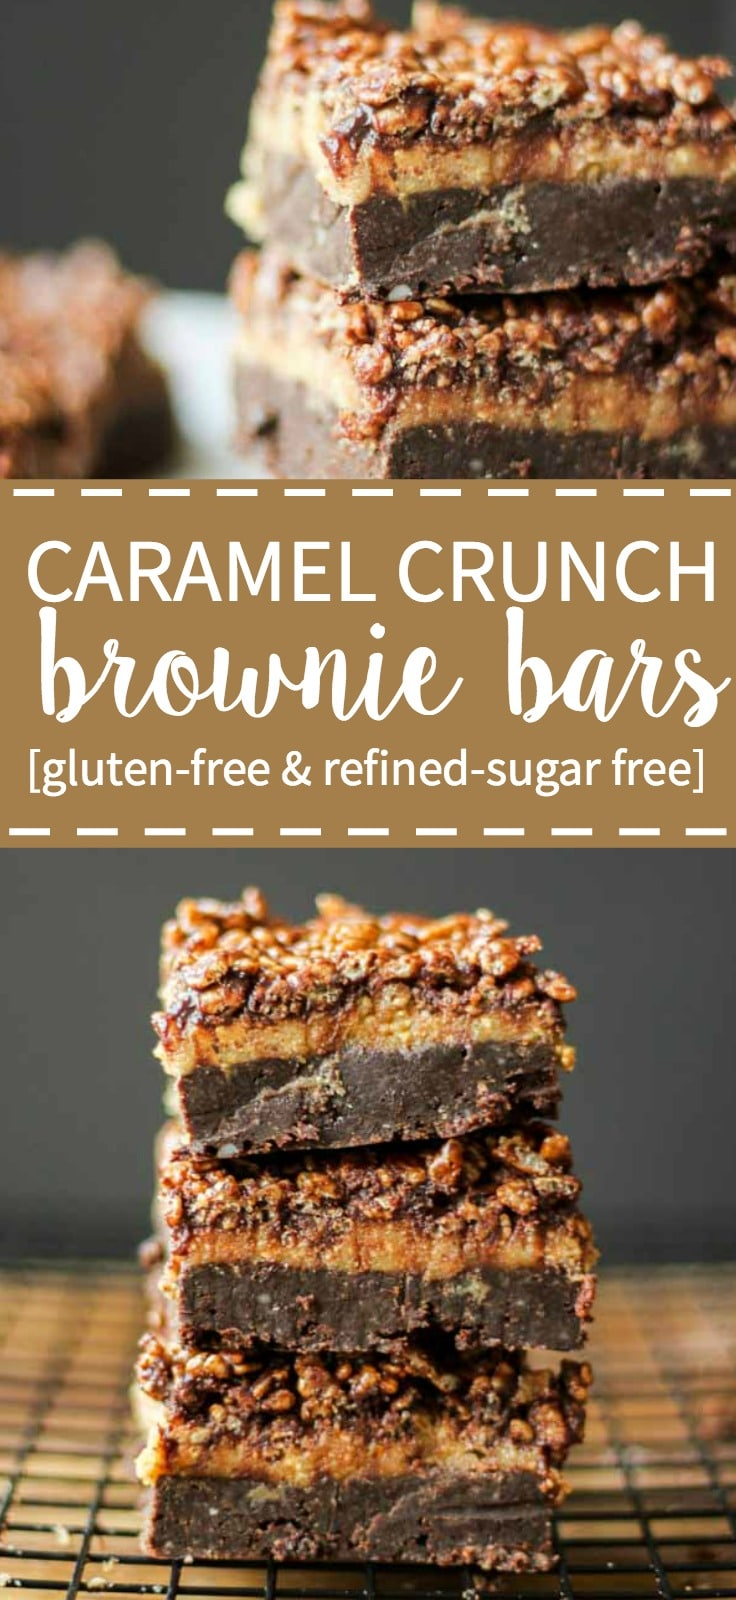 caramel-crunch-brownie-bars